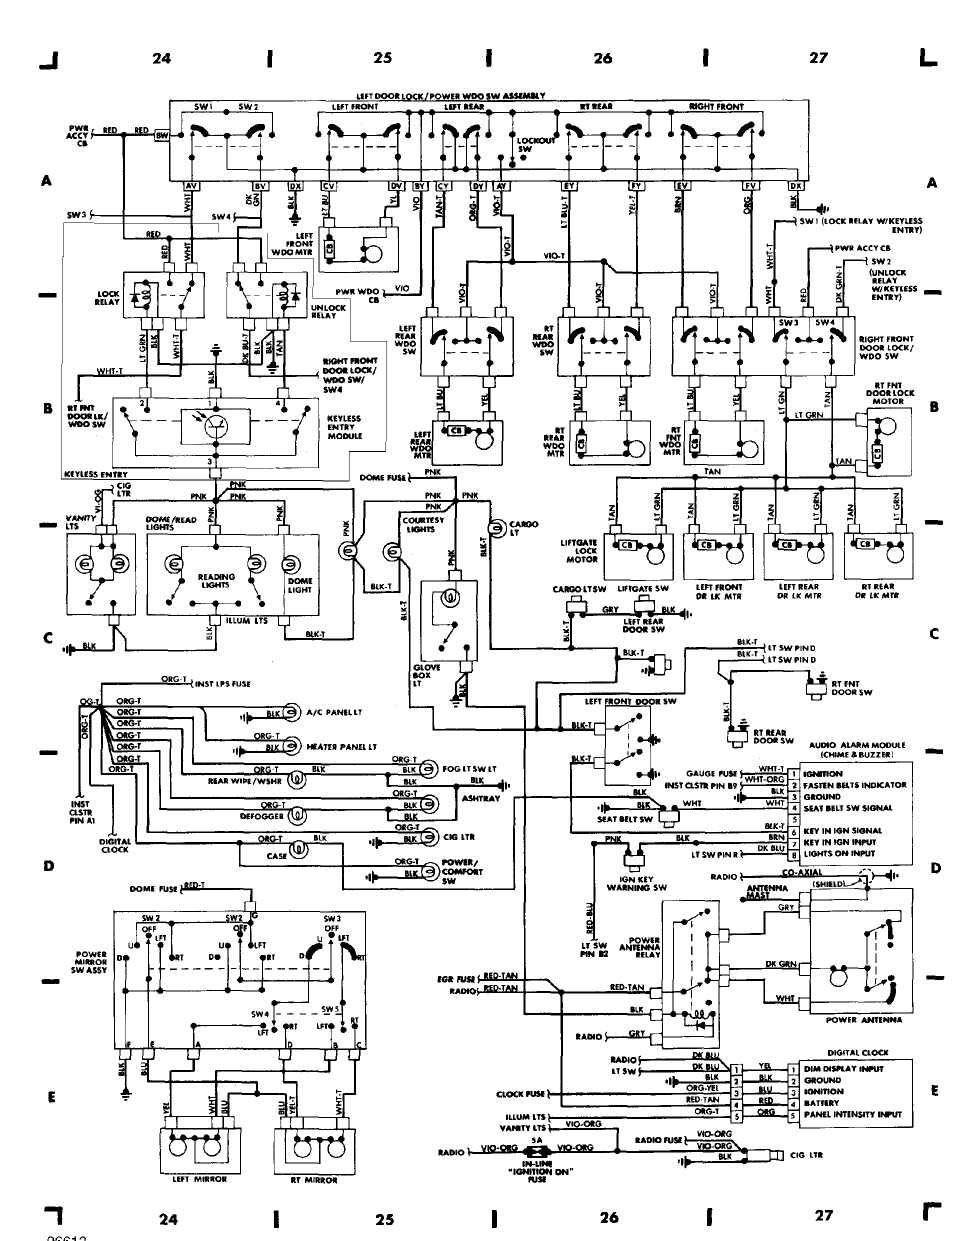 wiring_diagrams_html_61f5e0ad 2001 jeep wrangler wiring diagram 2001 mazda miata wiring diagram 2001 jeep cherokee fuse box diagram at edmiracle.co